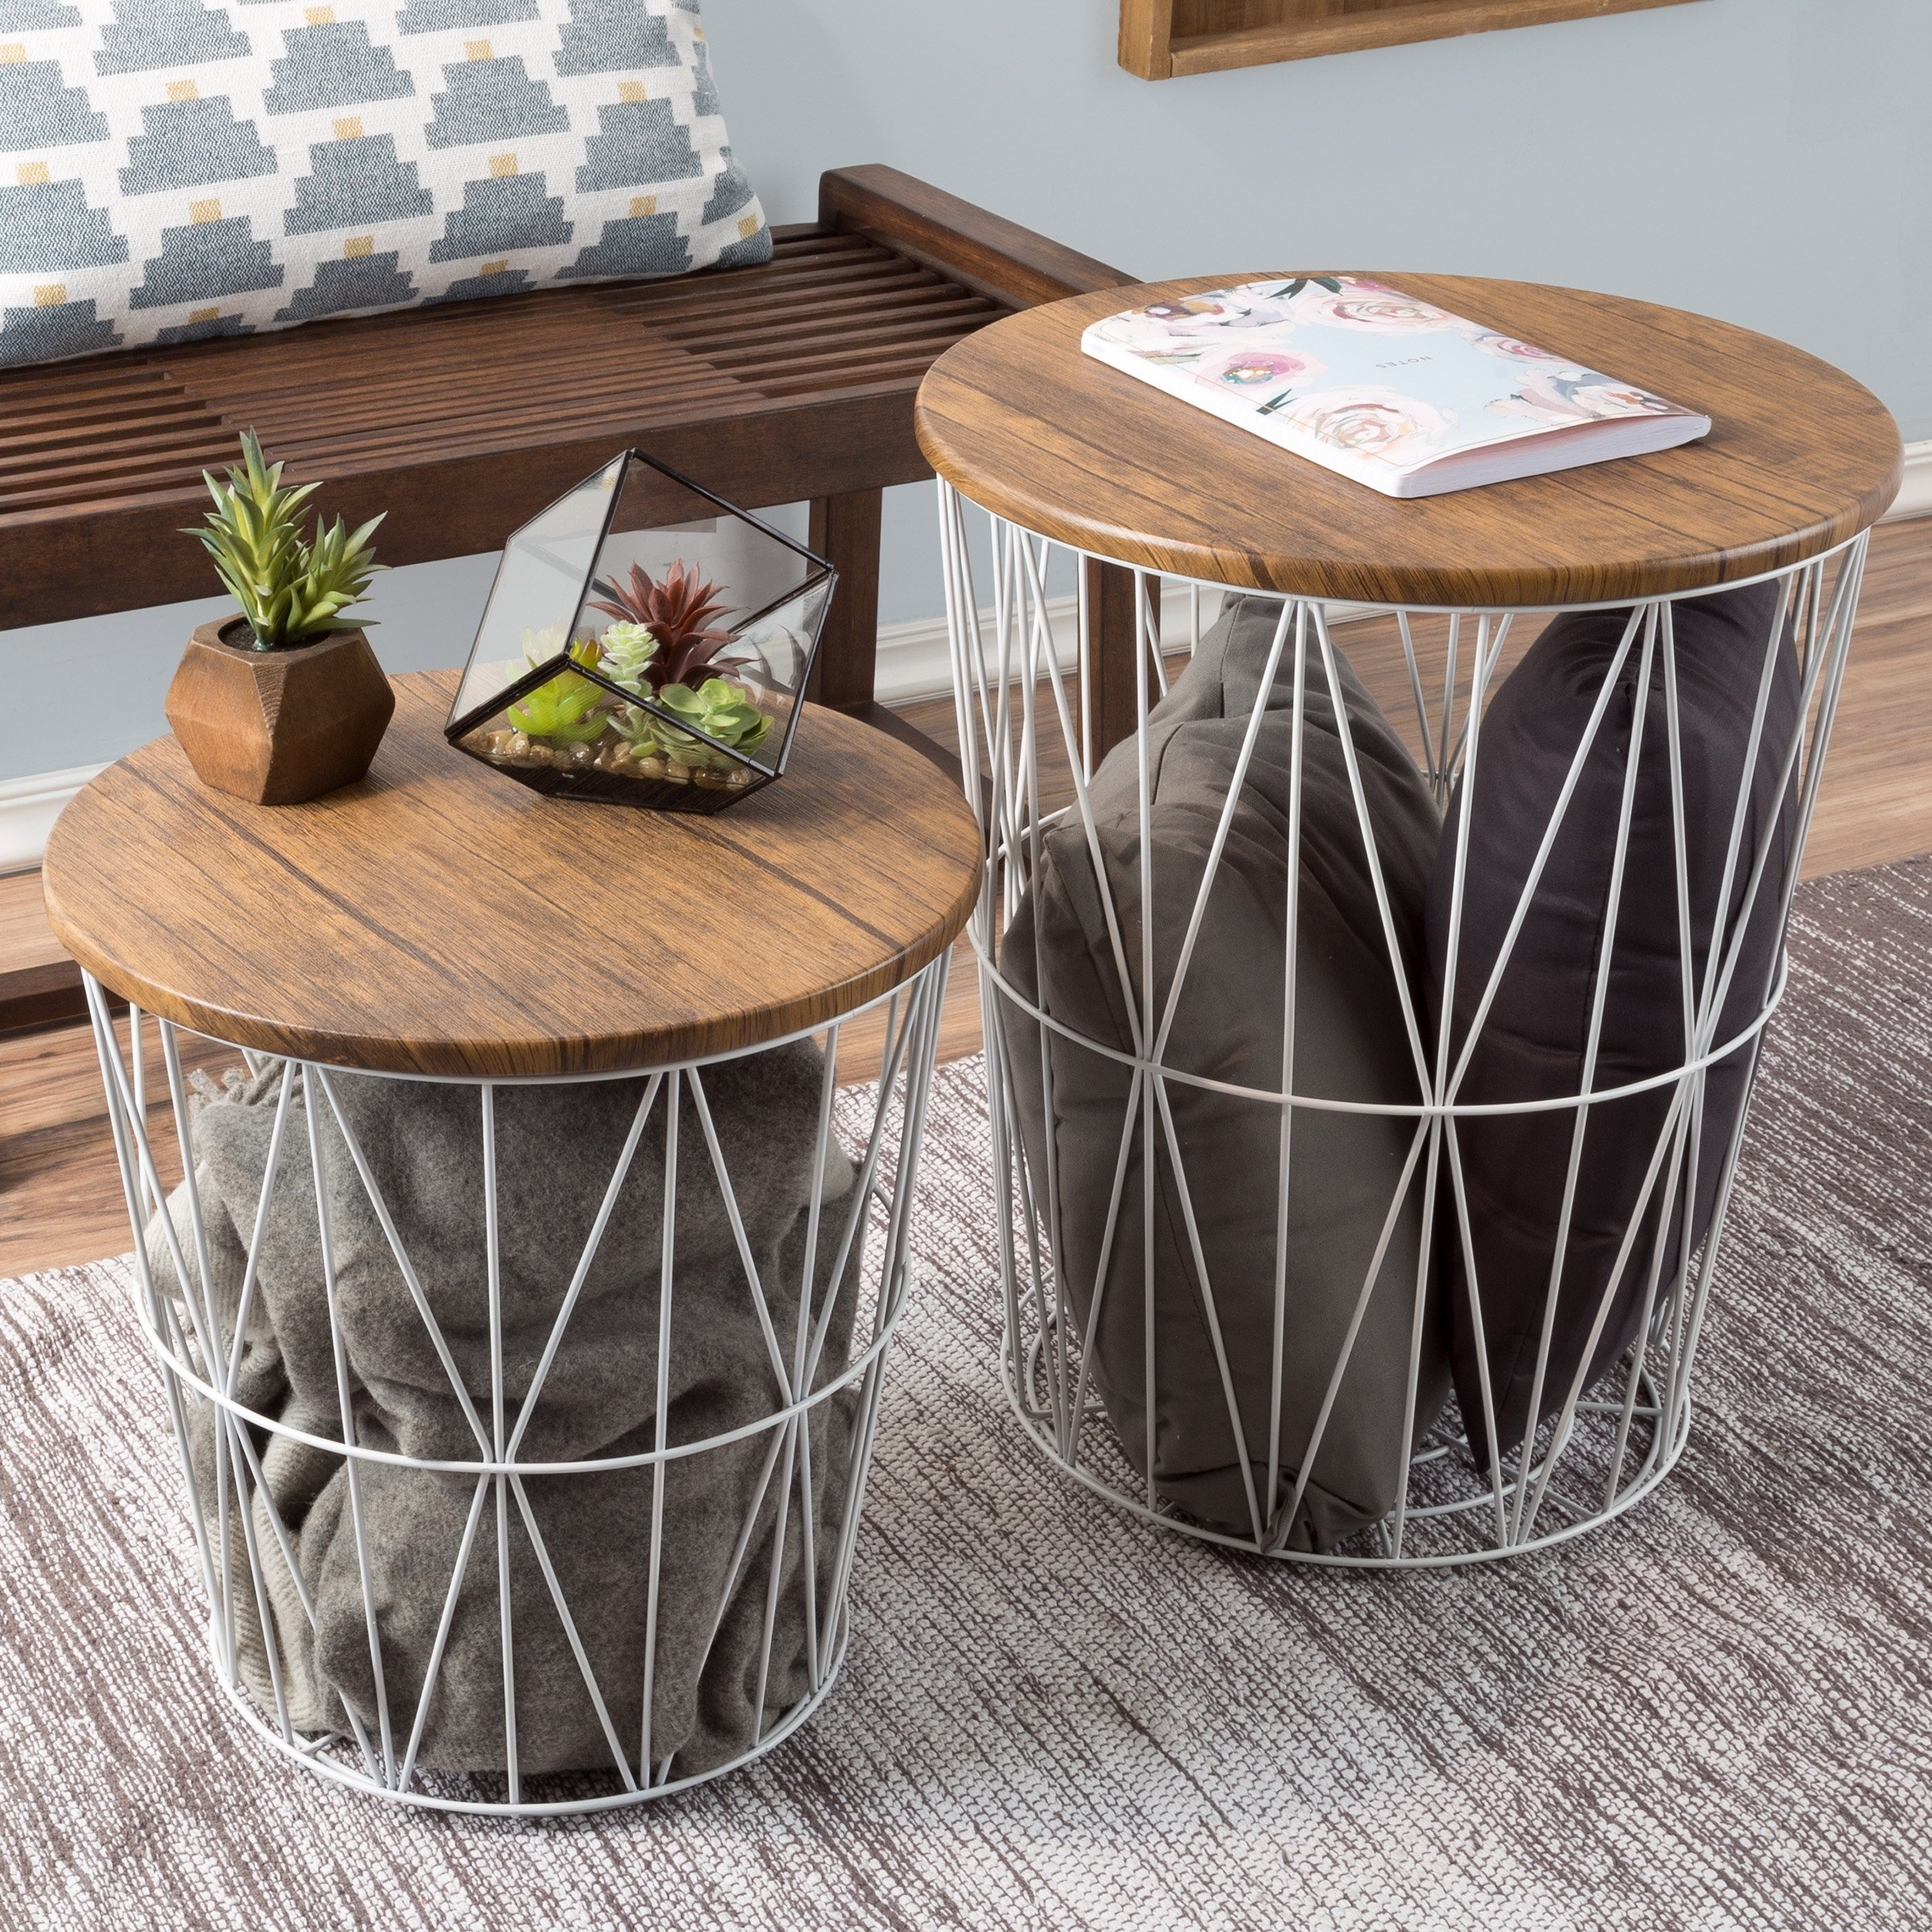 nesting end tables with storage set convertible round metal basket veneer wood top accent side lavish home table free shipping today sofa console led lamp short patio wine bar